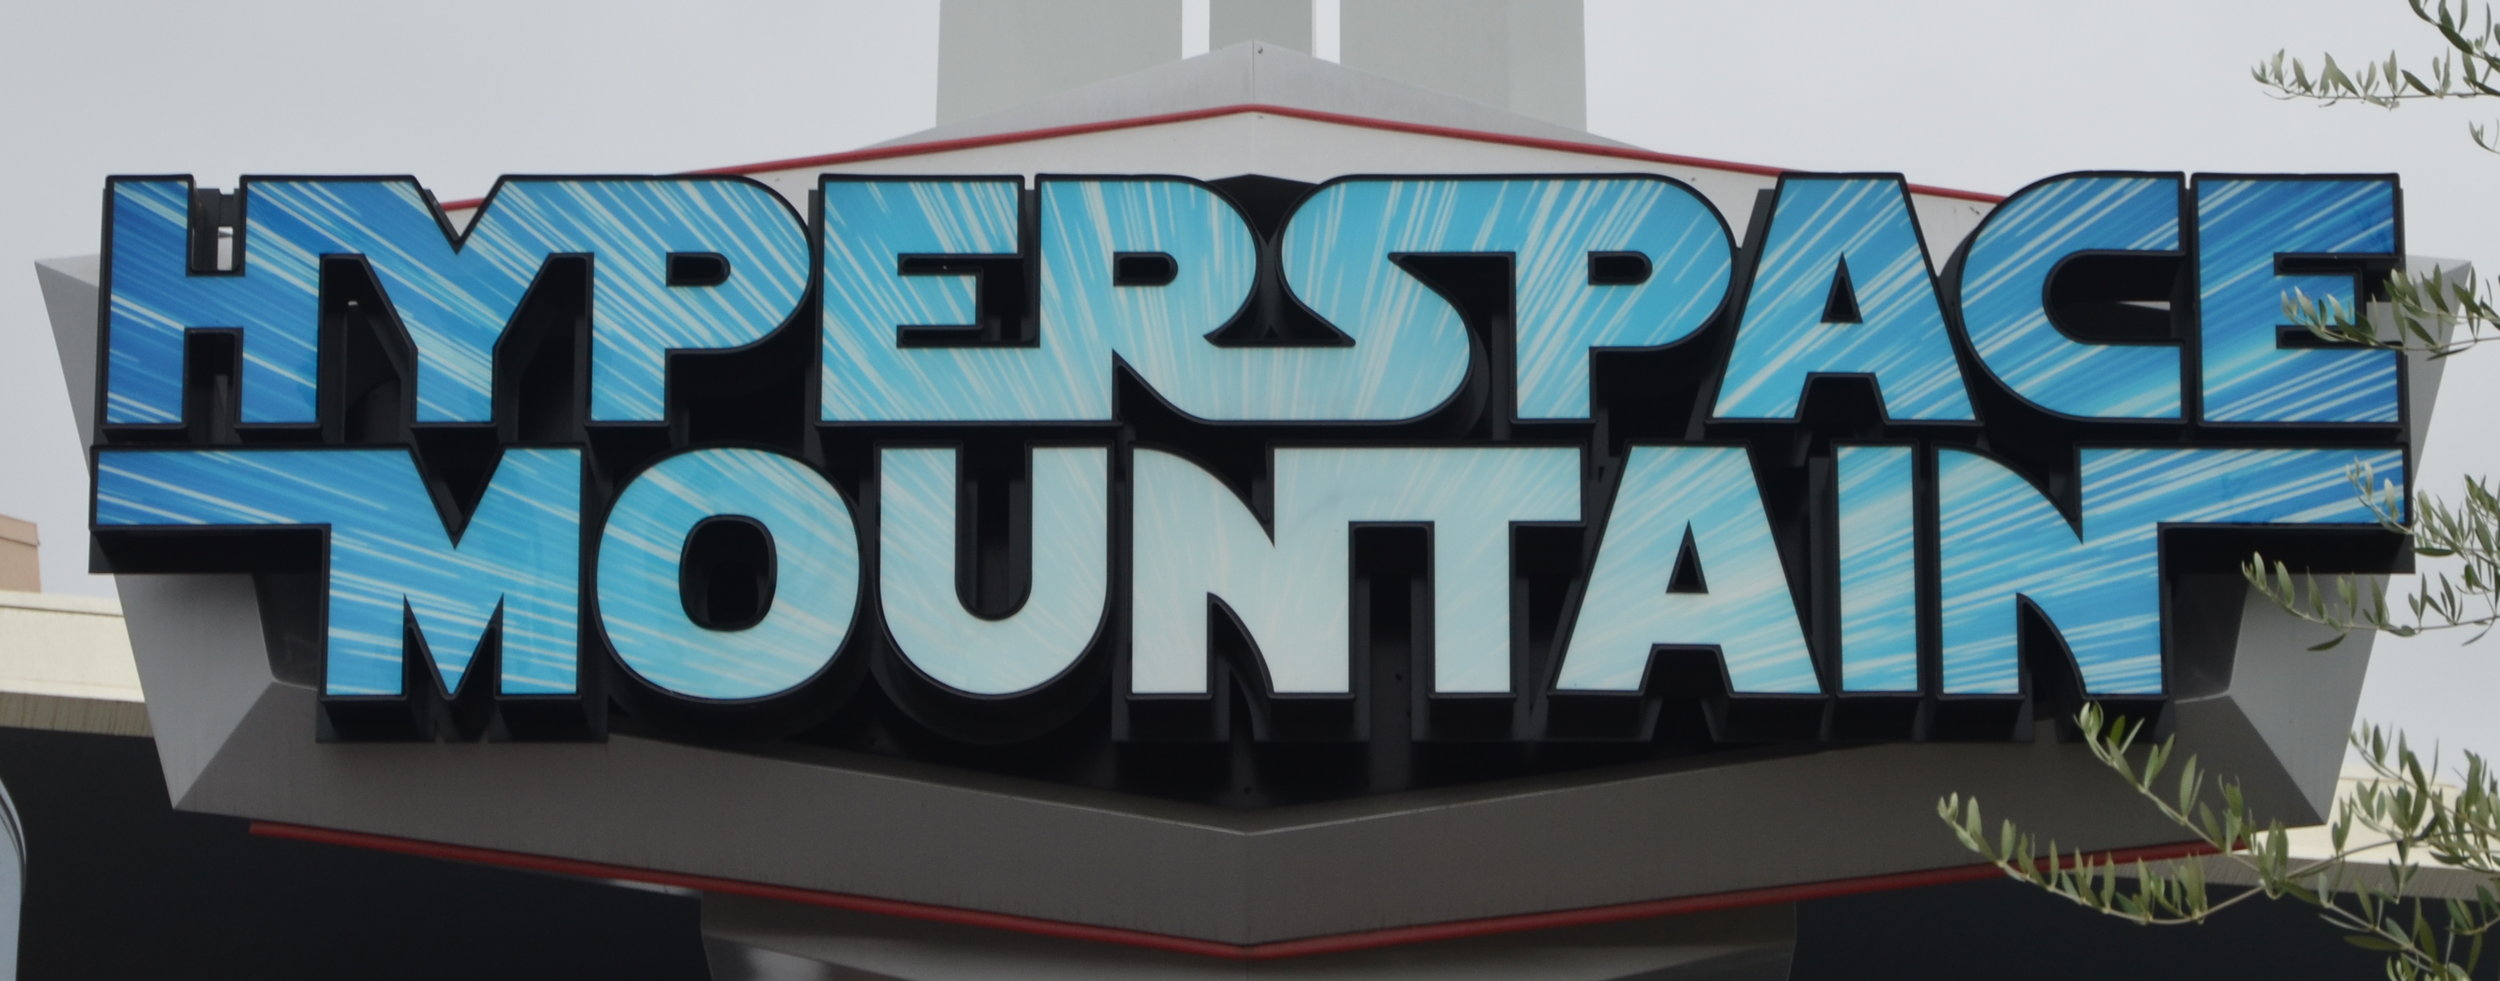 Hyperspace Mountain sign